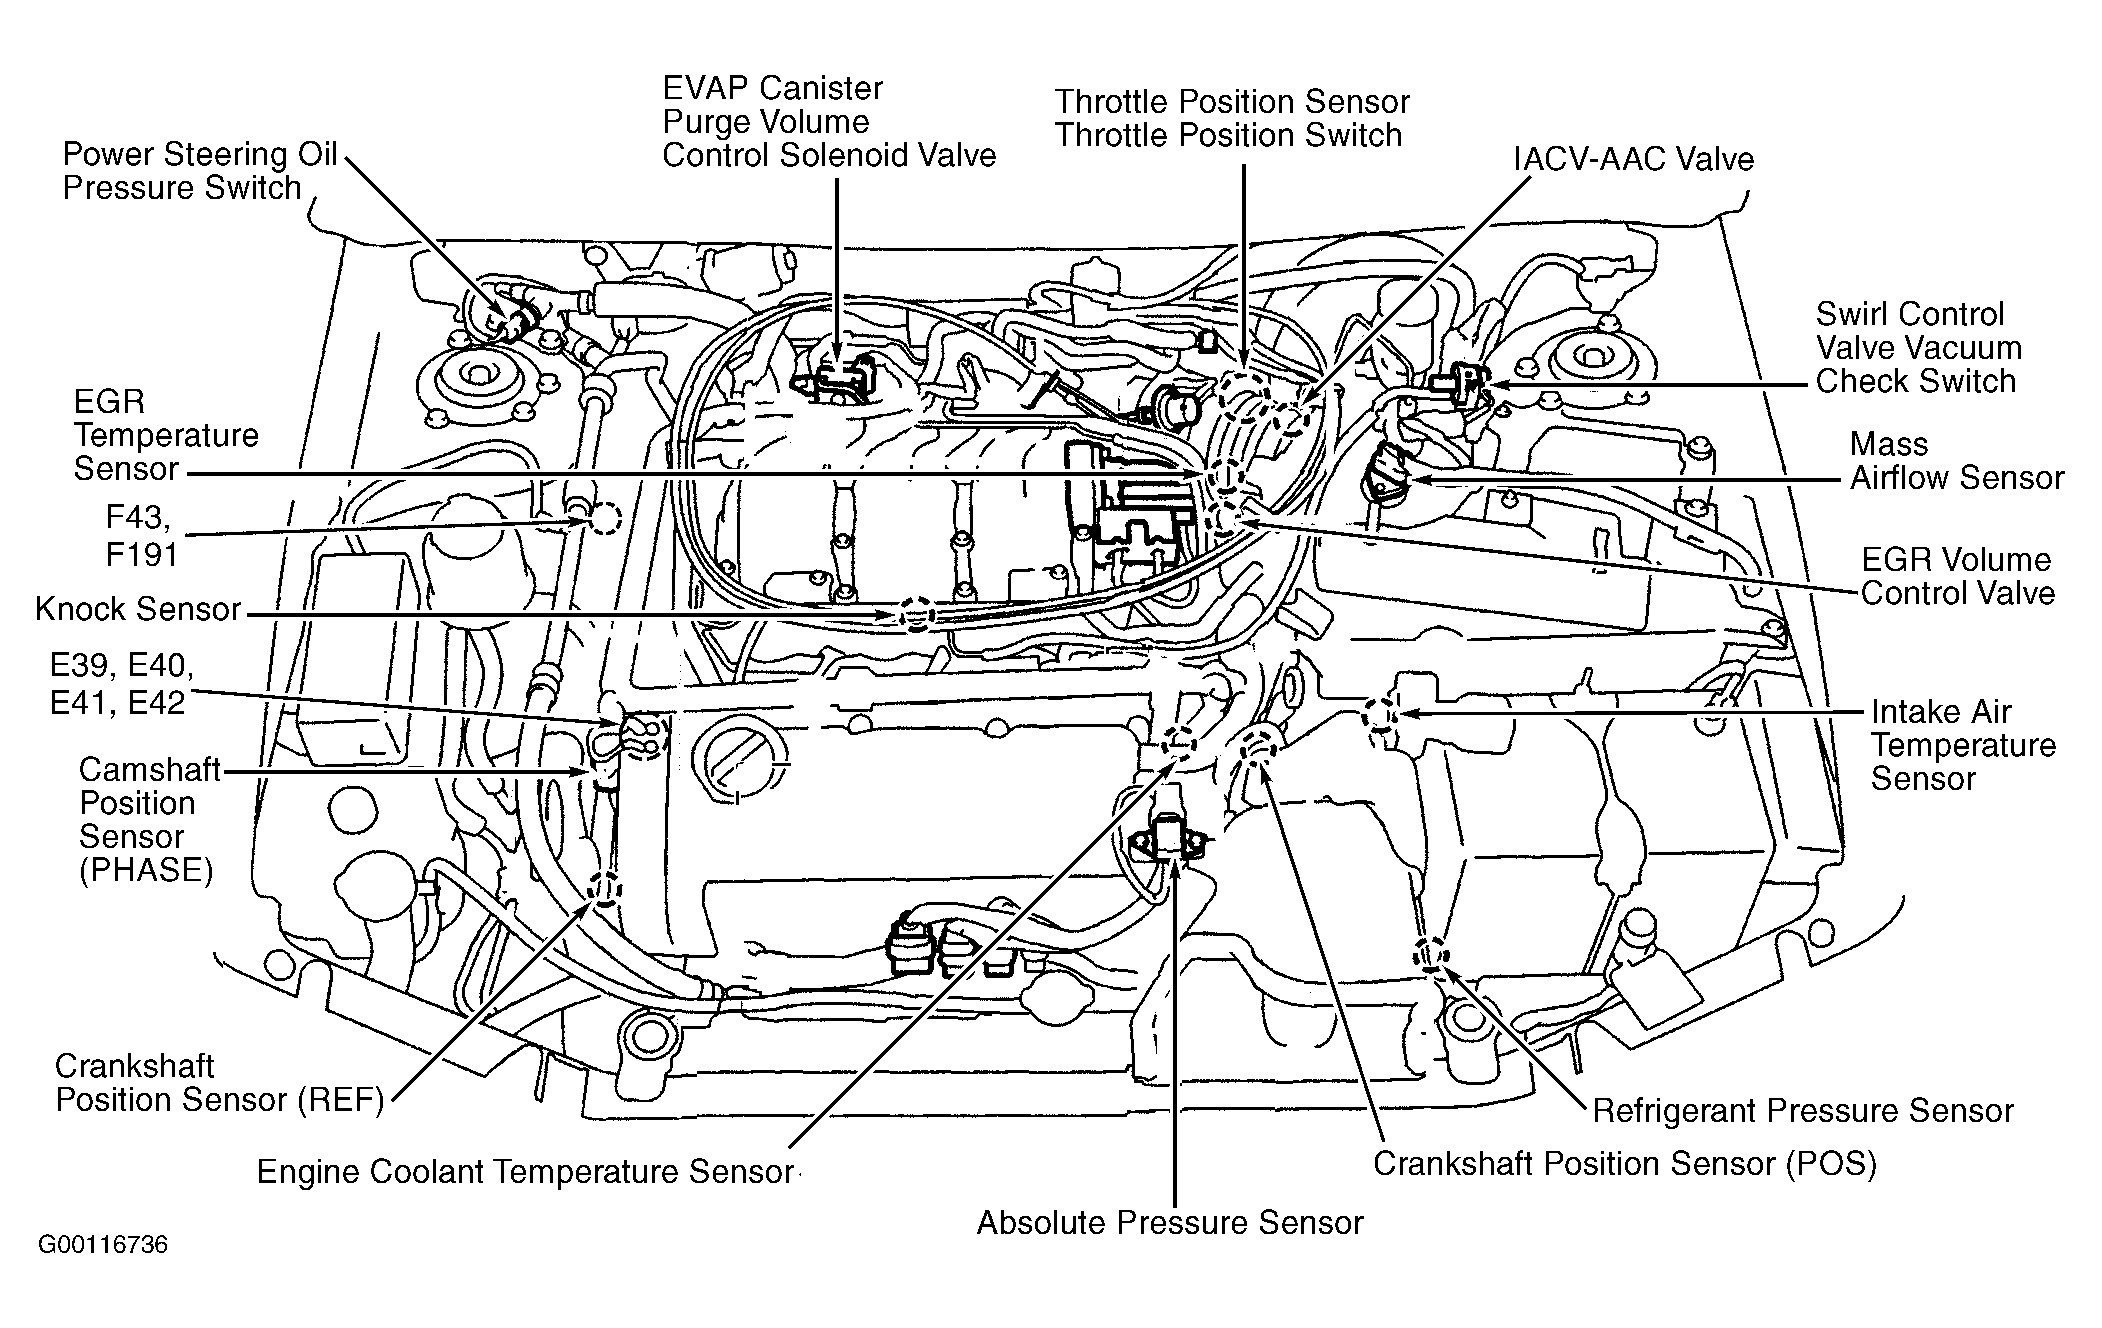 2005 Chrysler 300c Vehicle Diagram. Chrysler. Auto Parts